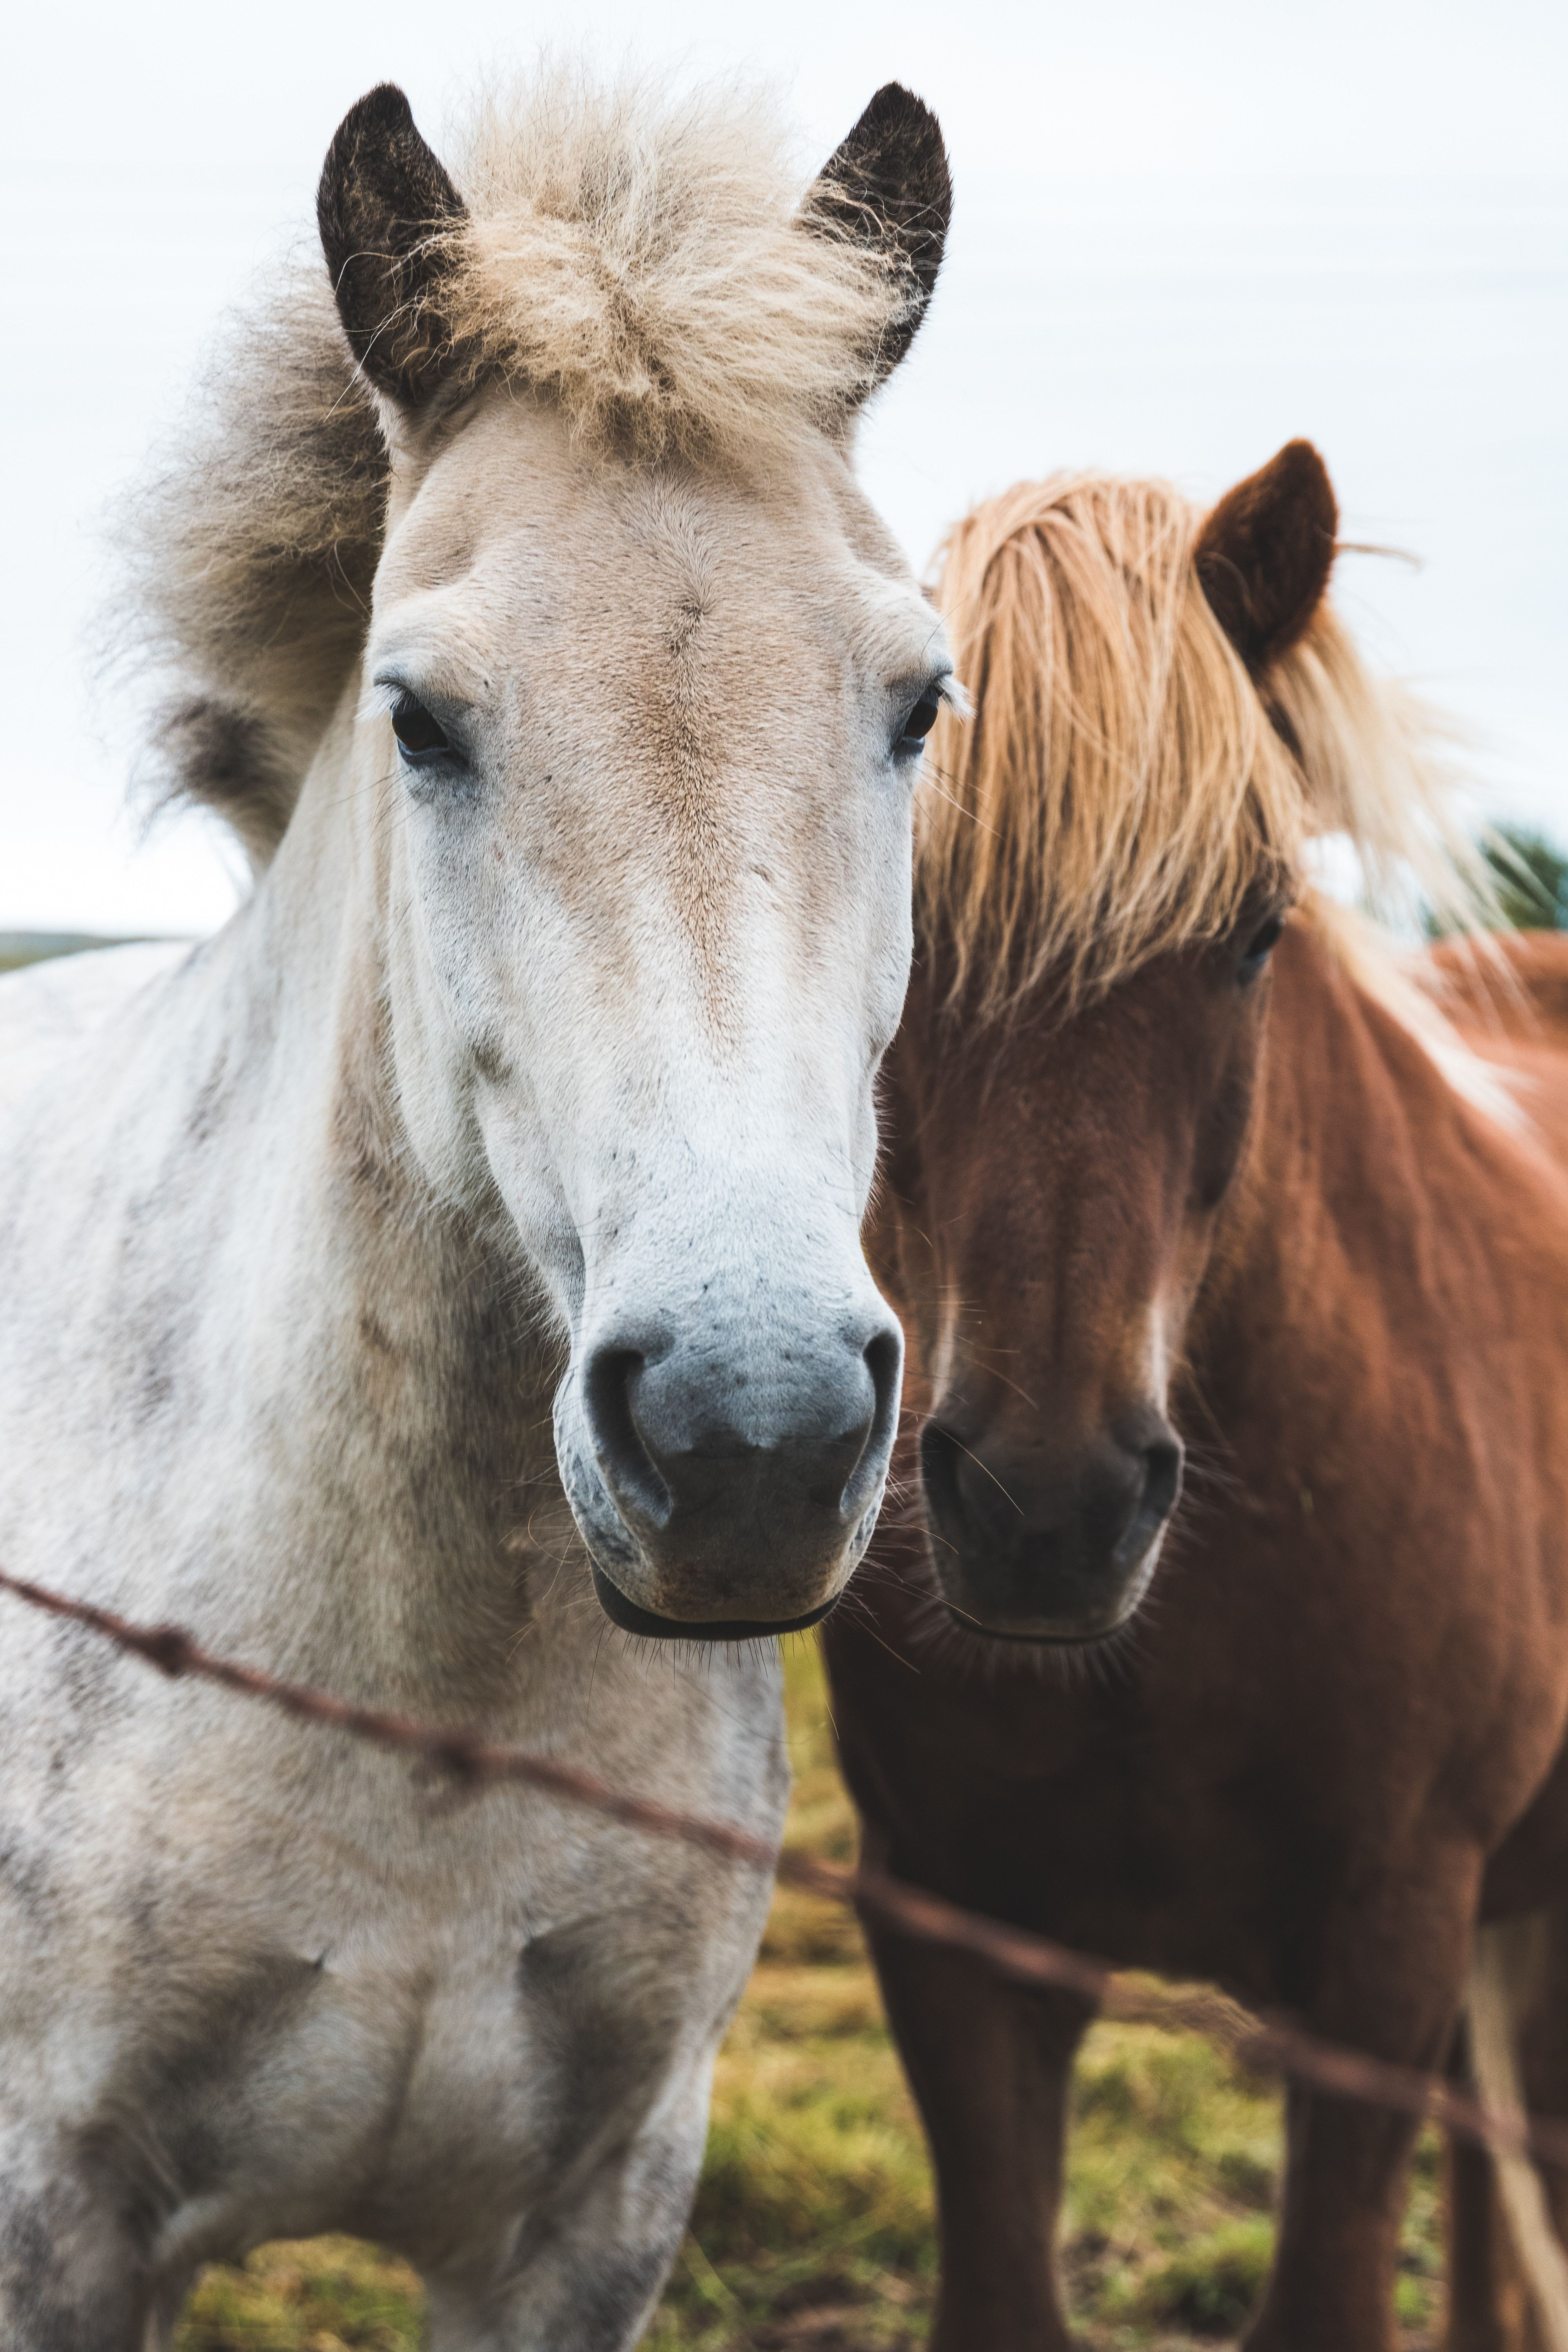 Horses side by side in behind fence